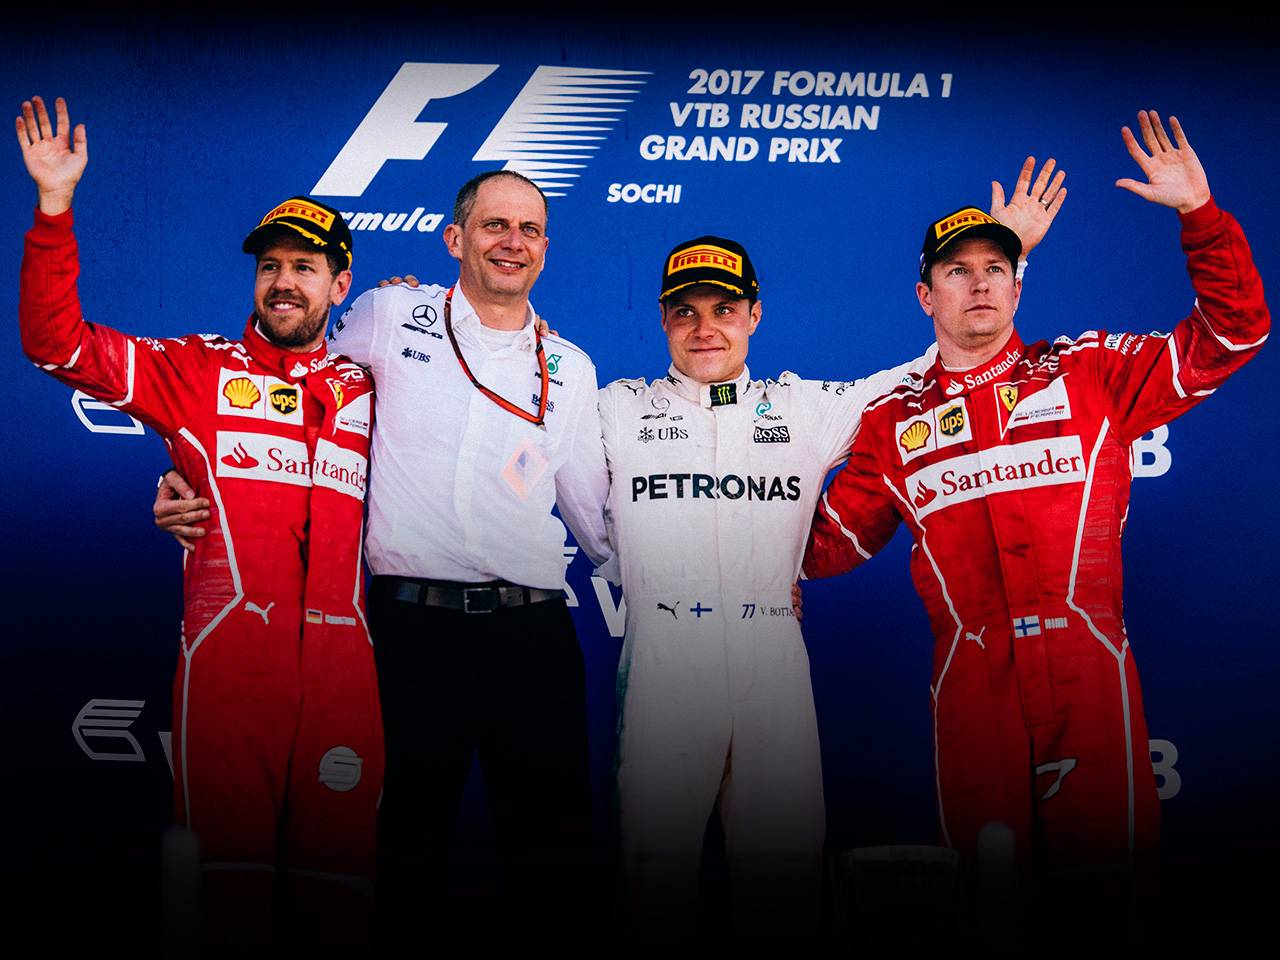 A double podium for Scuderia Ferrari